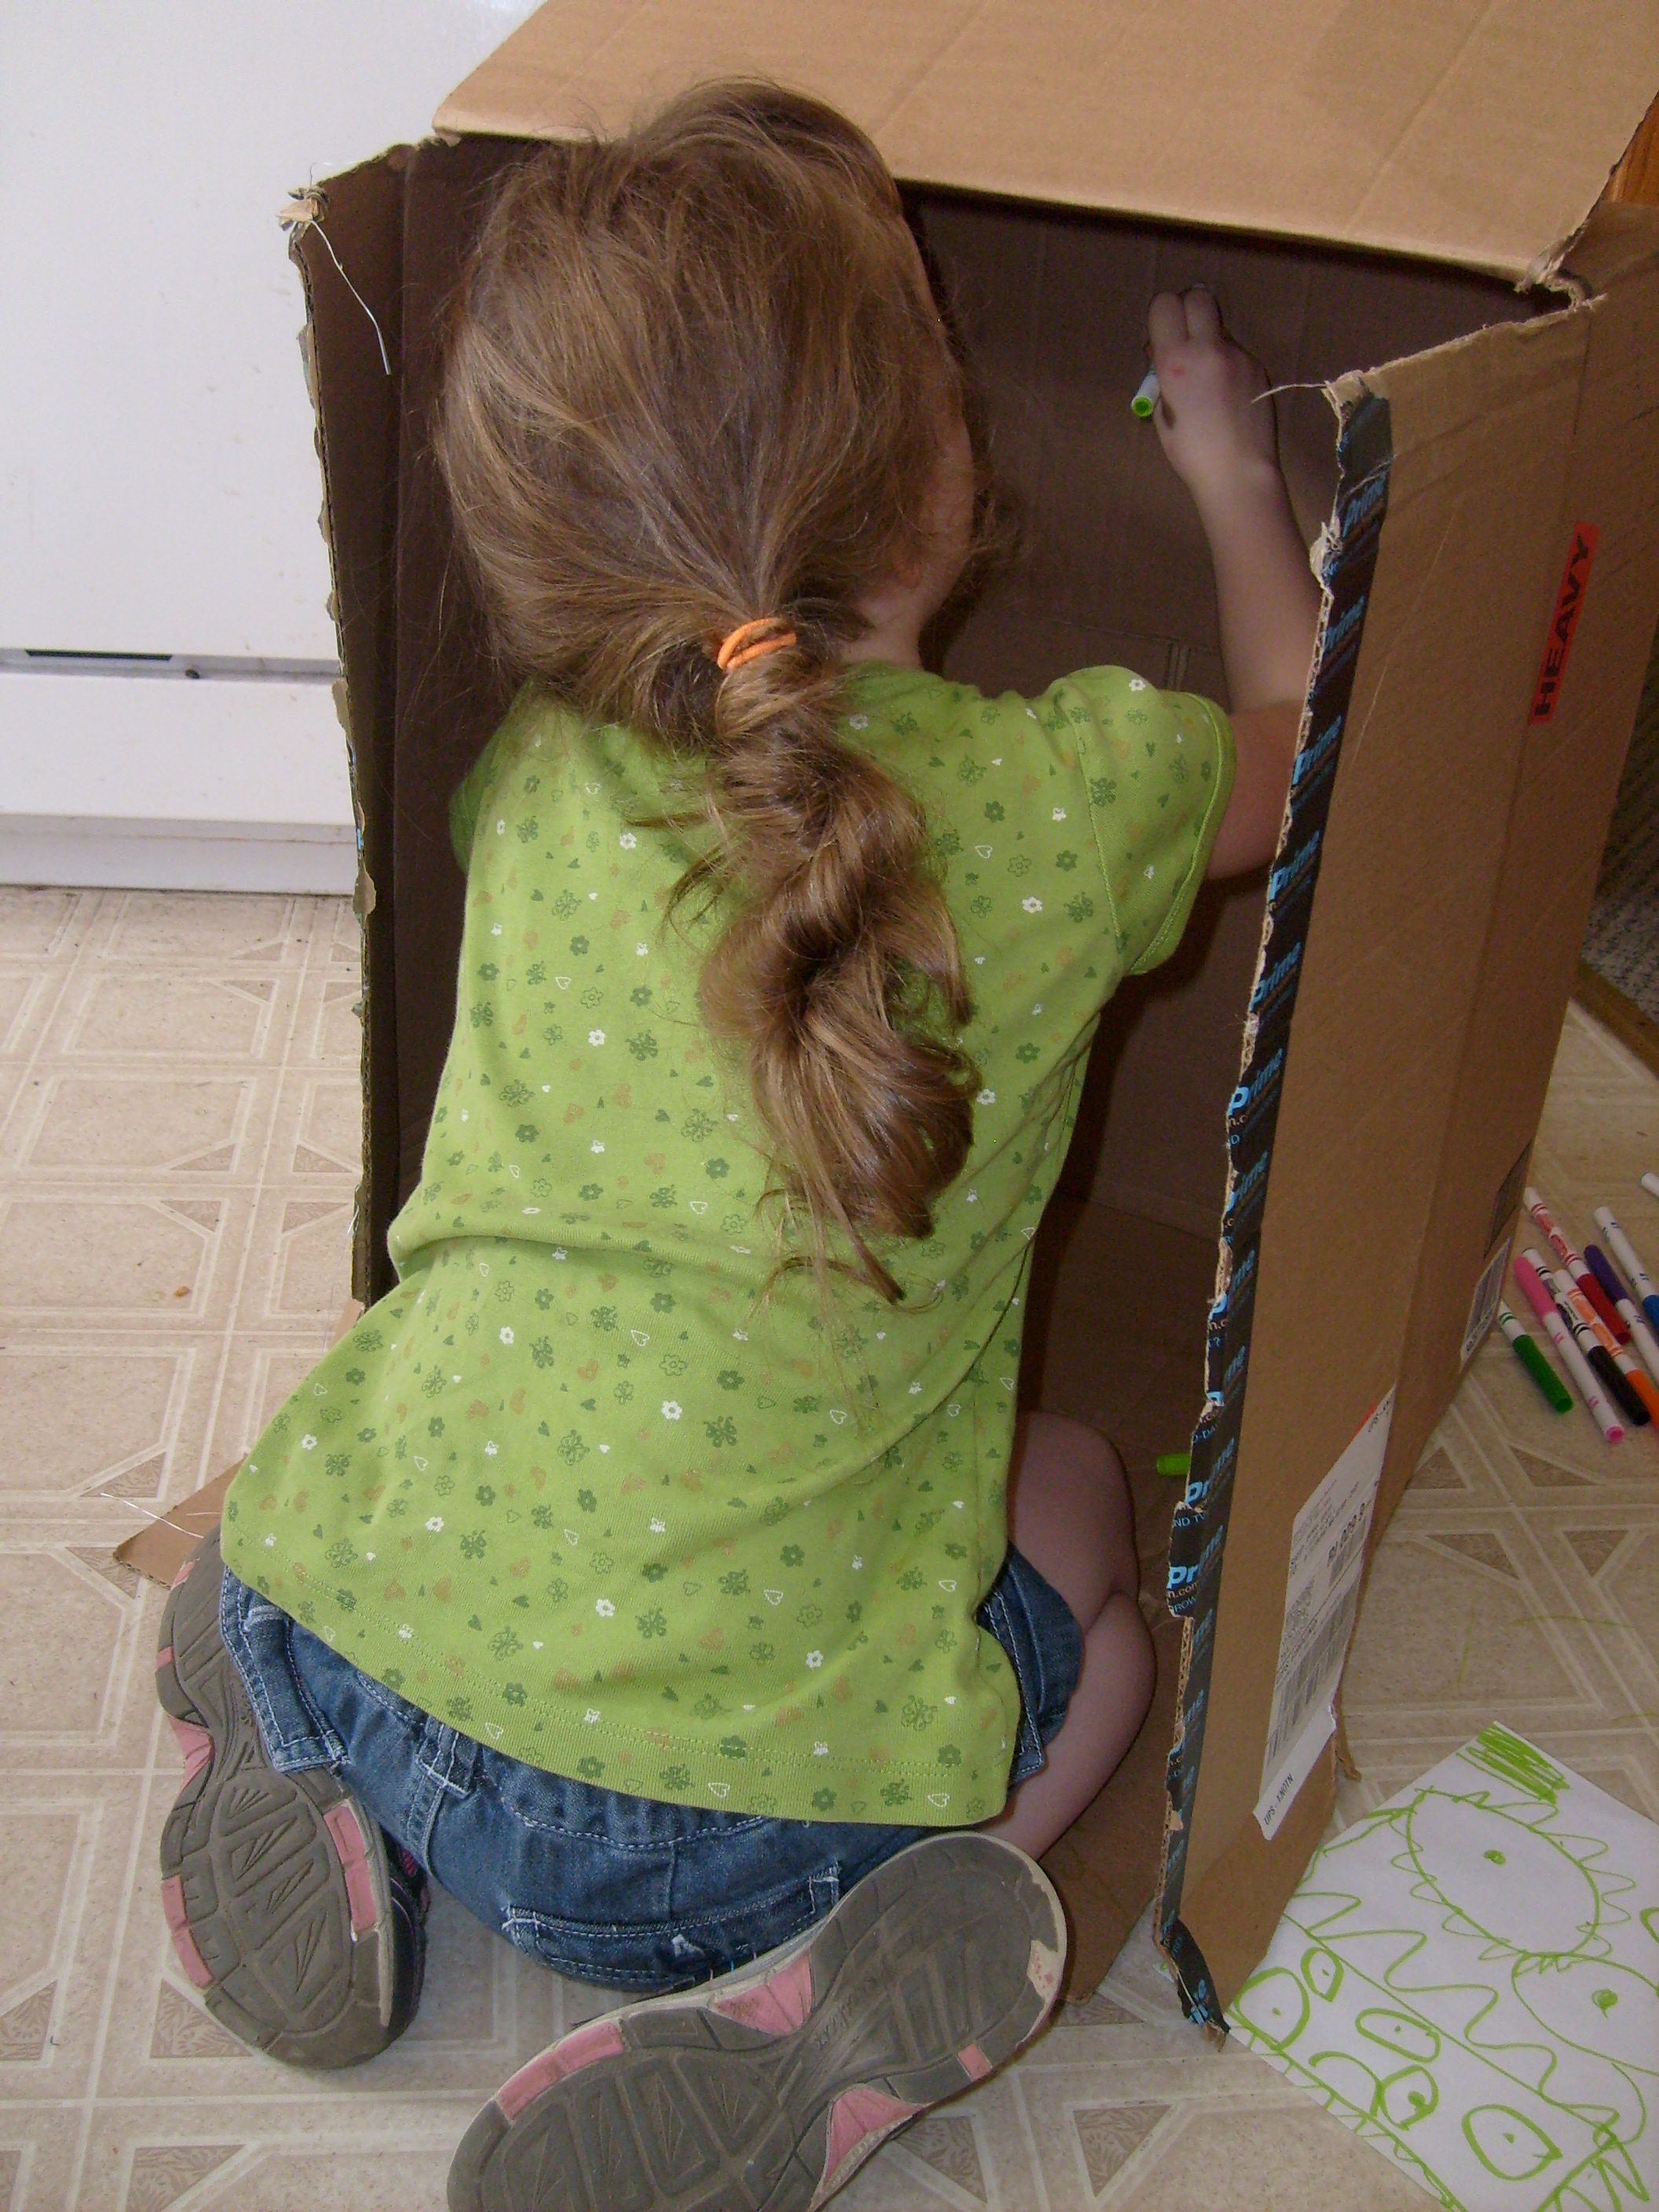 K's back as she draws on the inside of the best toy in the world - a cardboard box